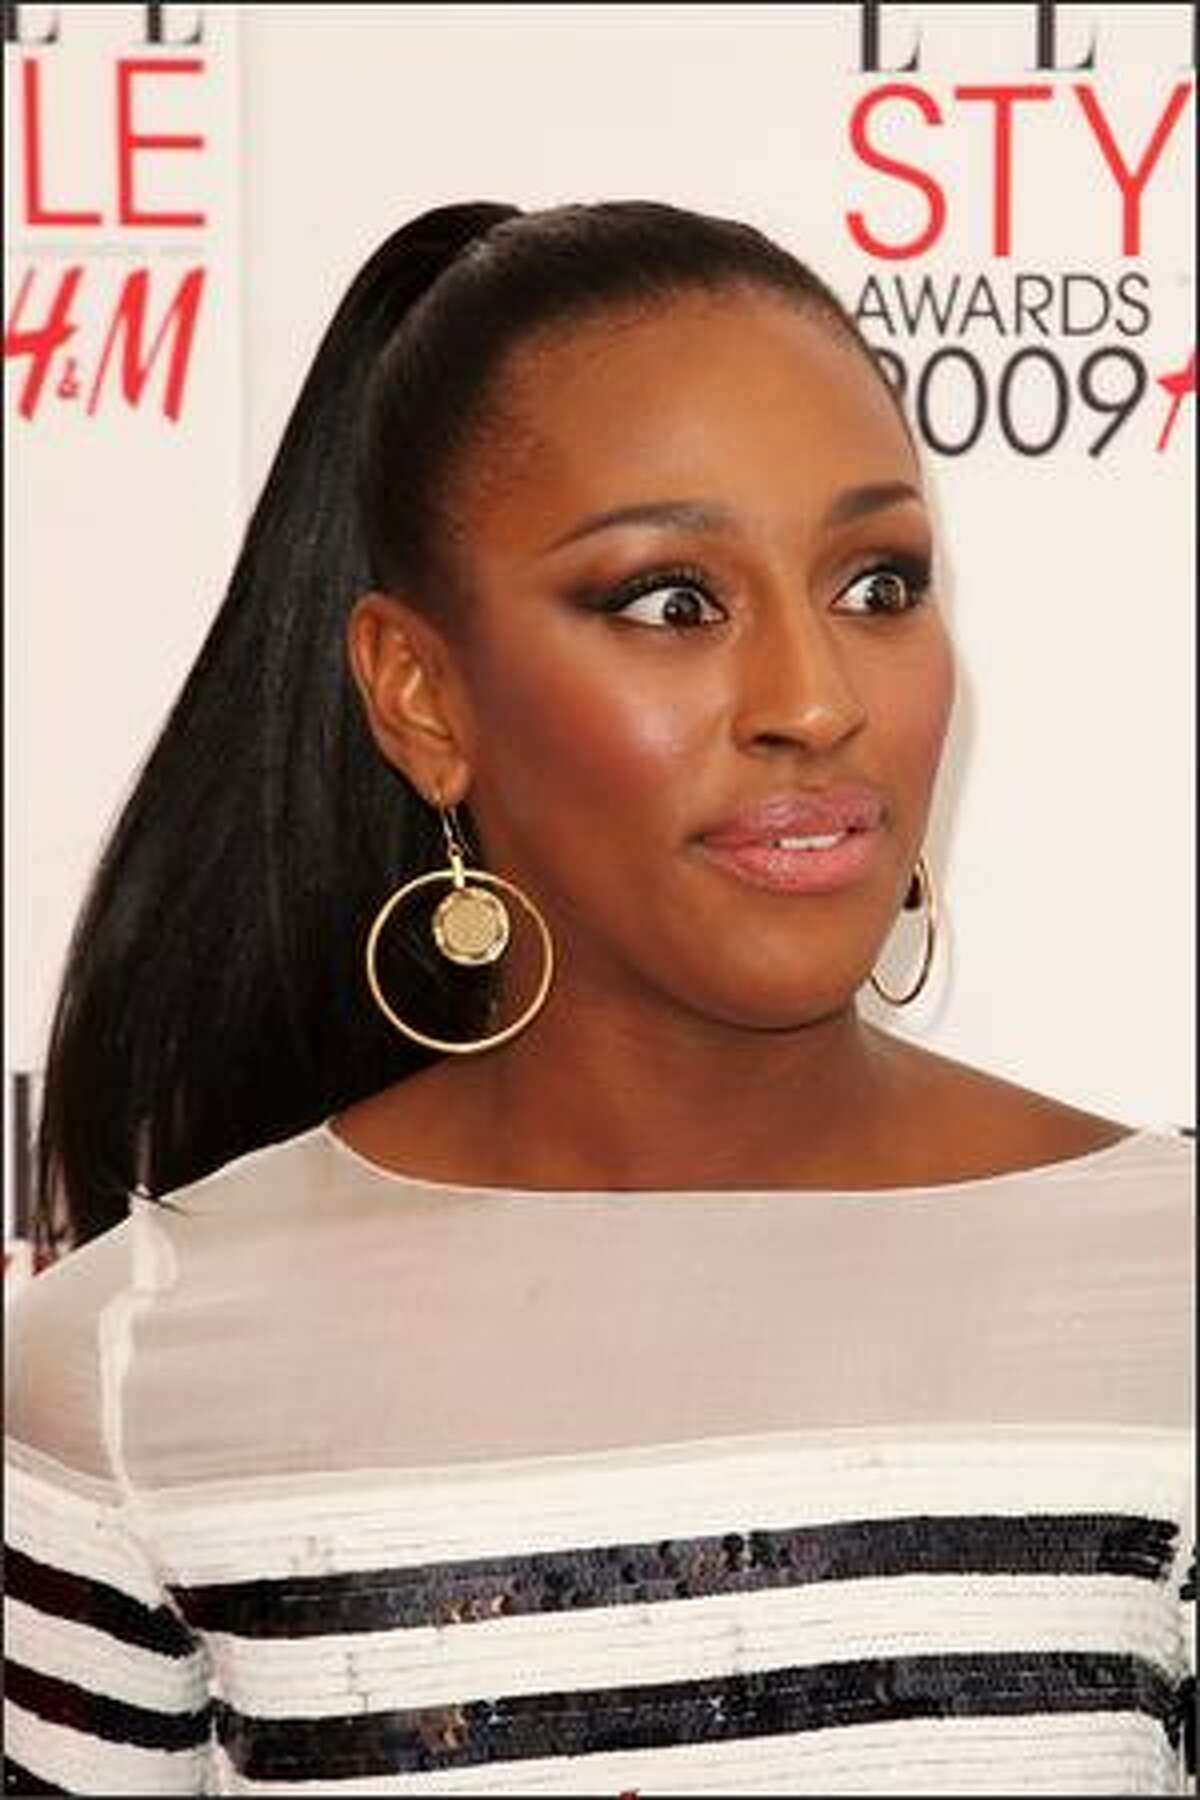 Alexandra Burke attends the Elle Style Awards 2009 held at Big Sky Studios, Caledonian Road in London, England.